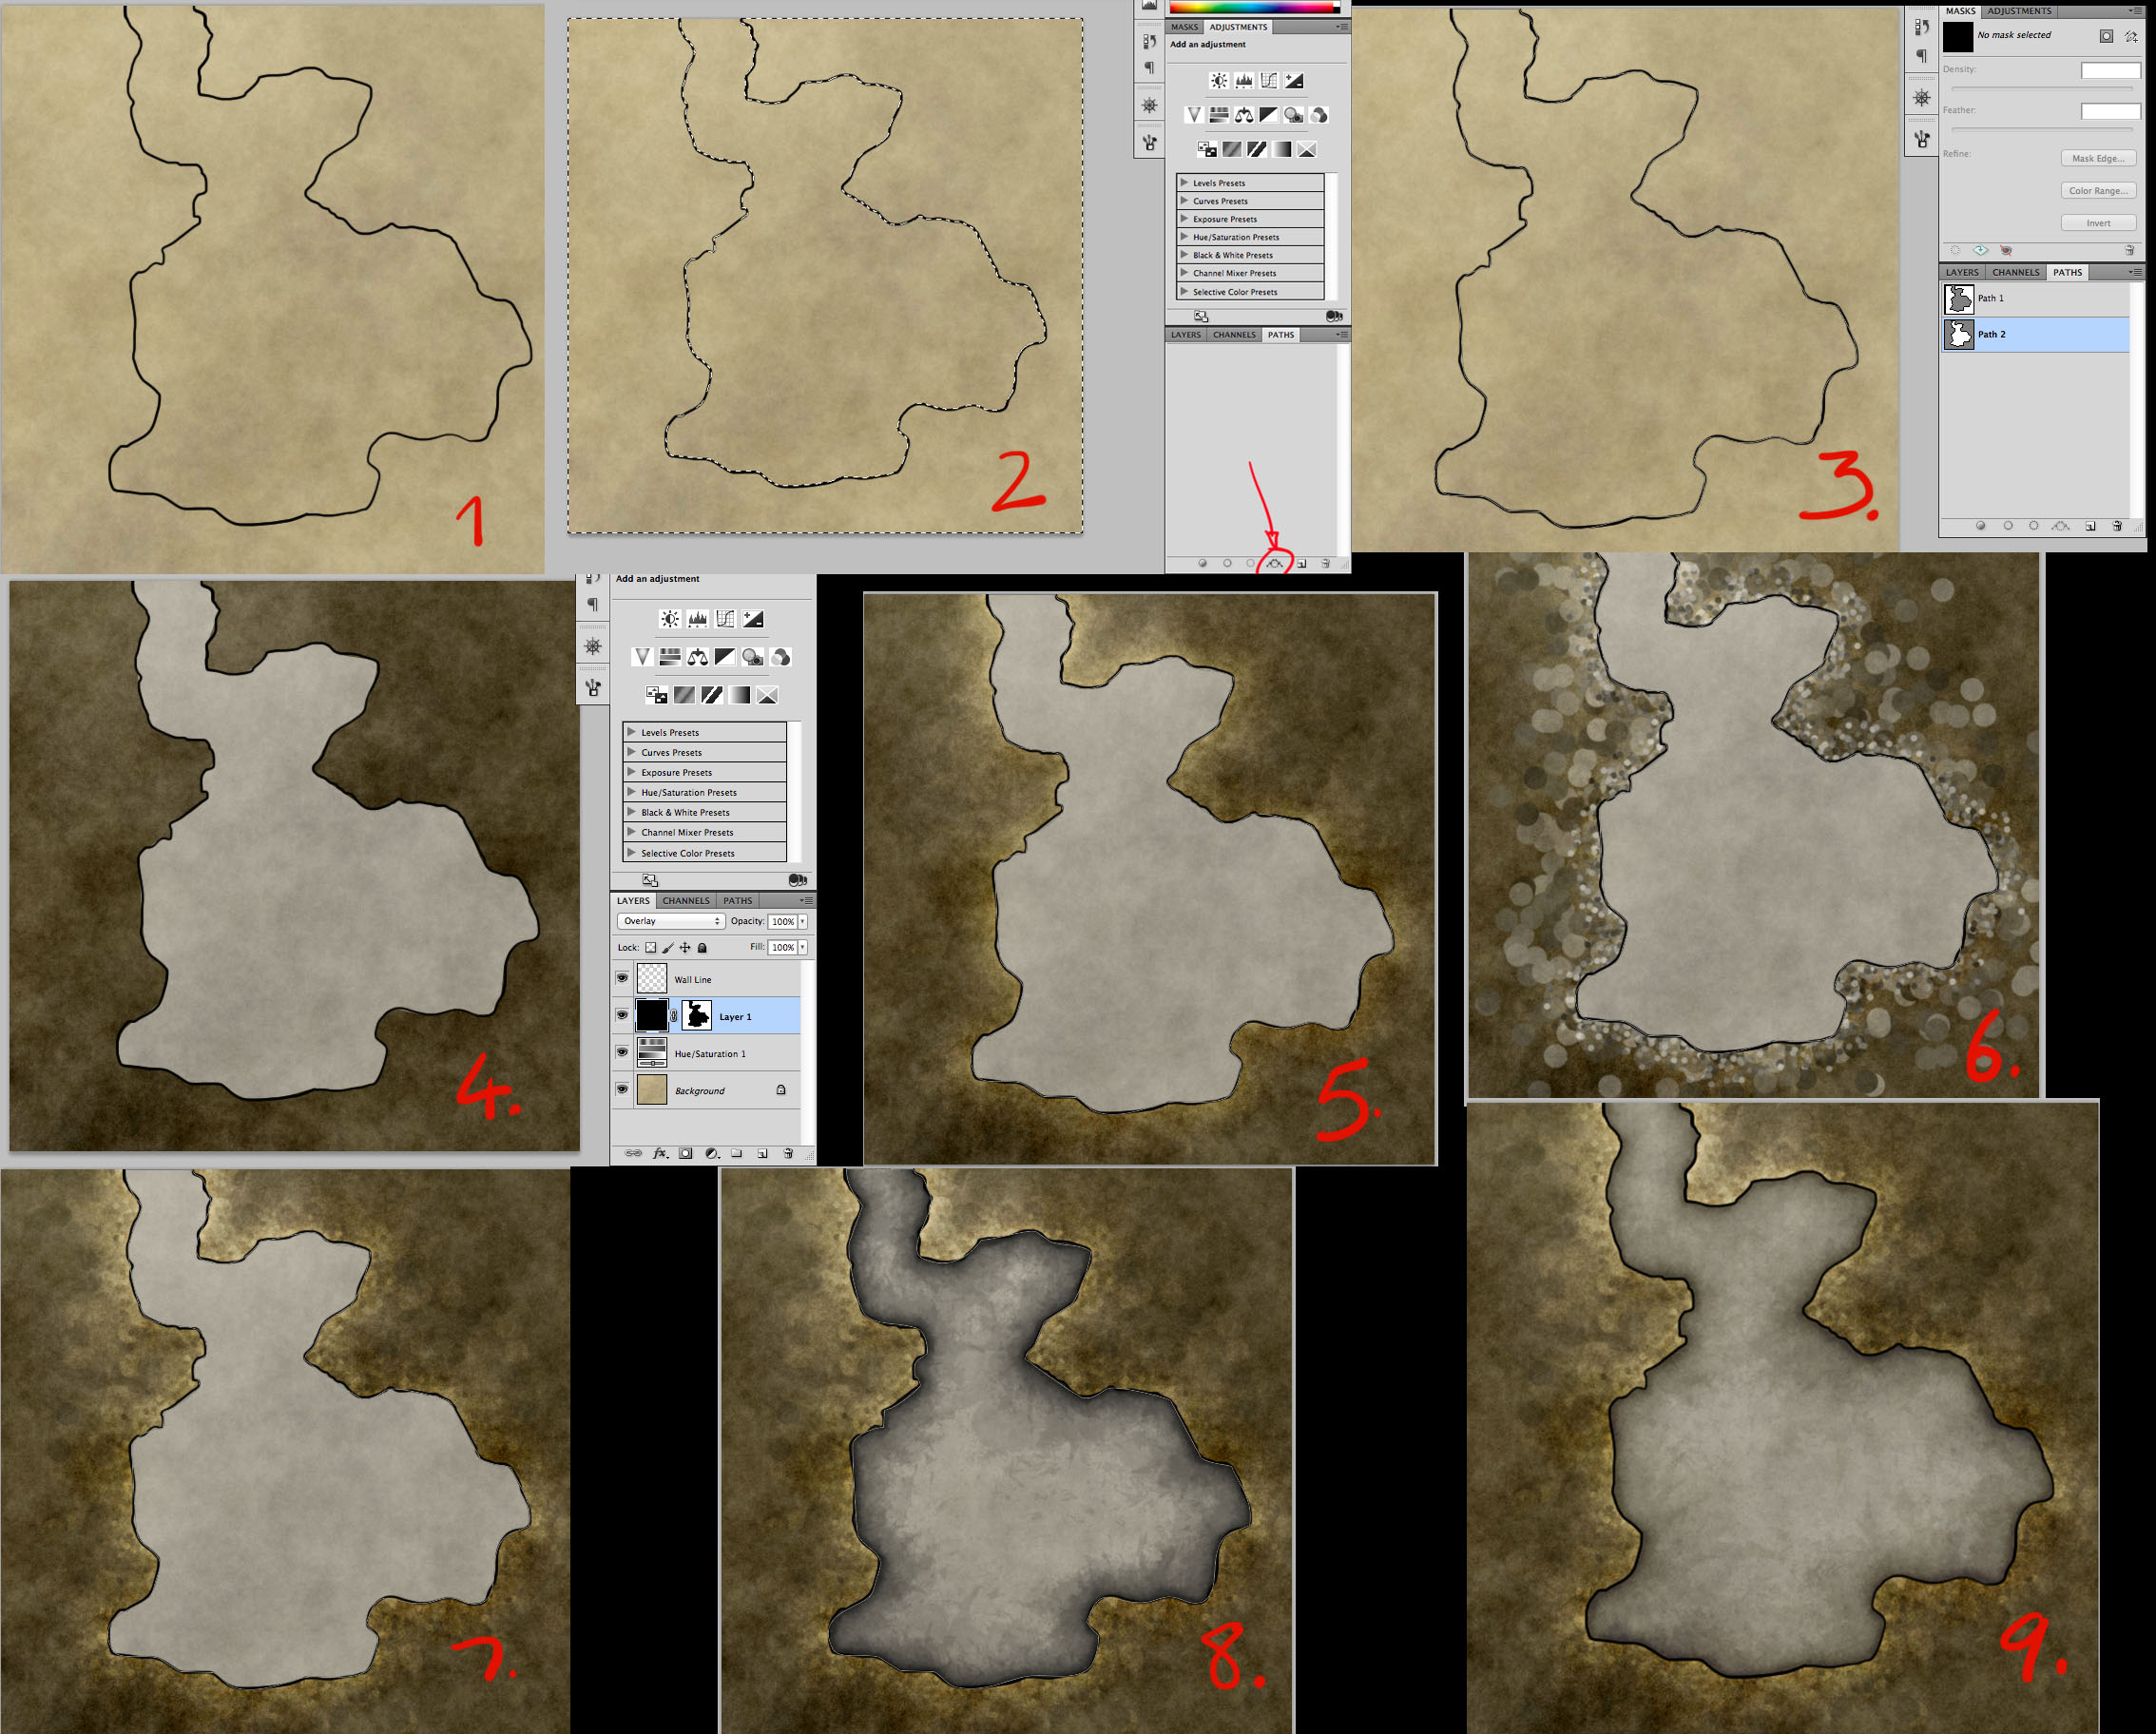 How to make a Simple Dungeon Map in Photoshop - YouTube